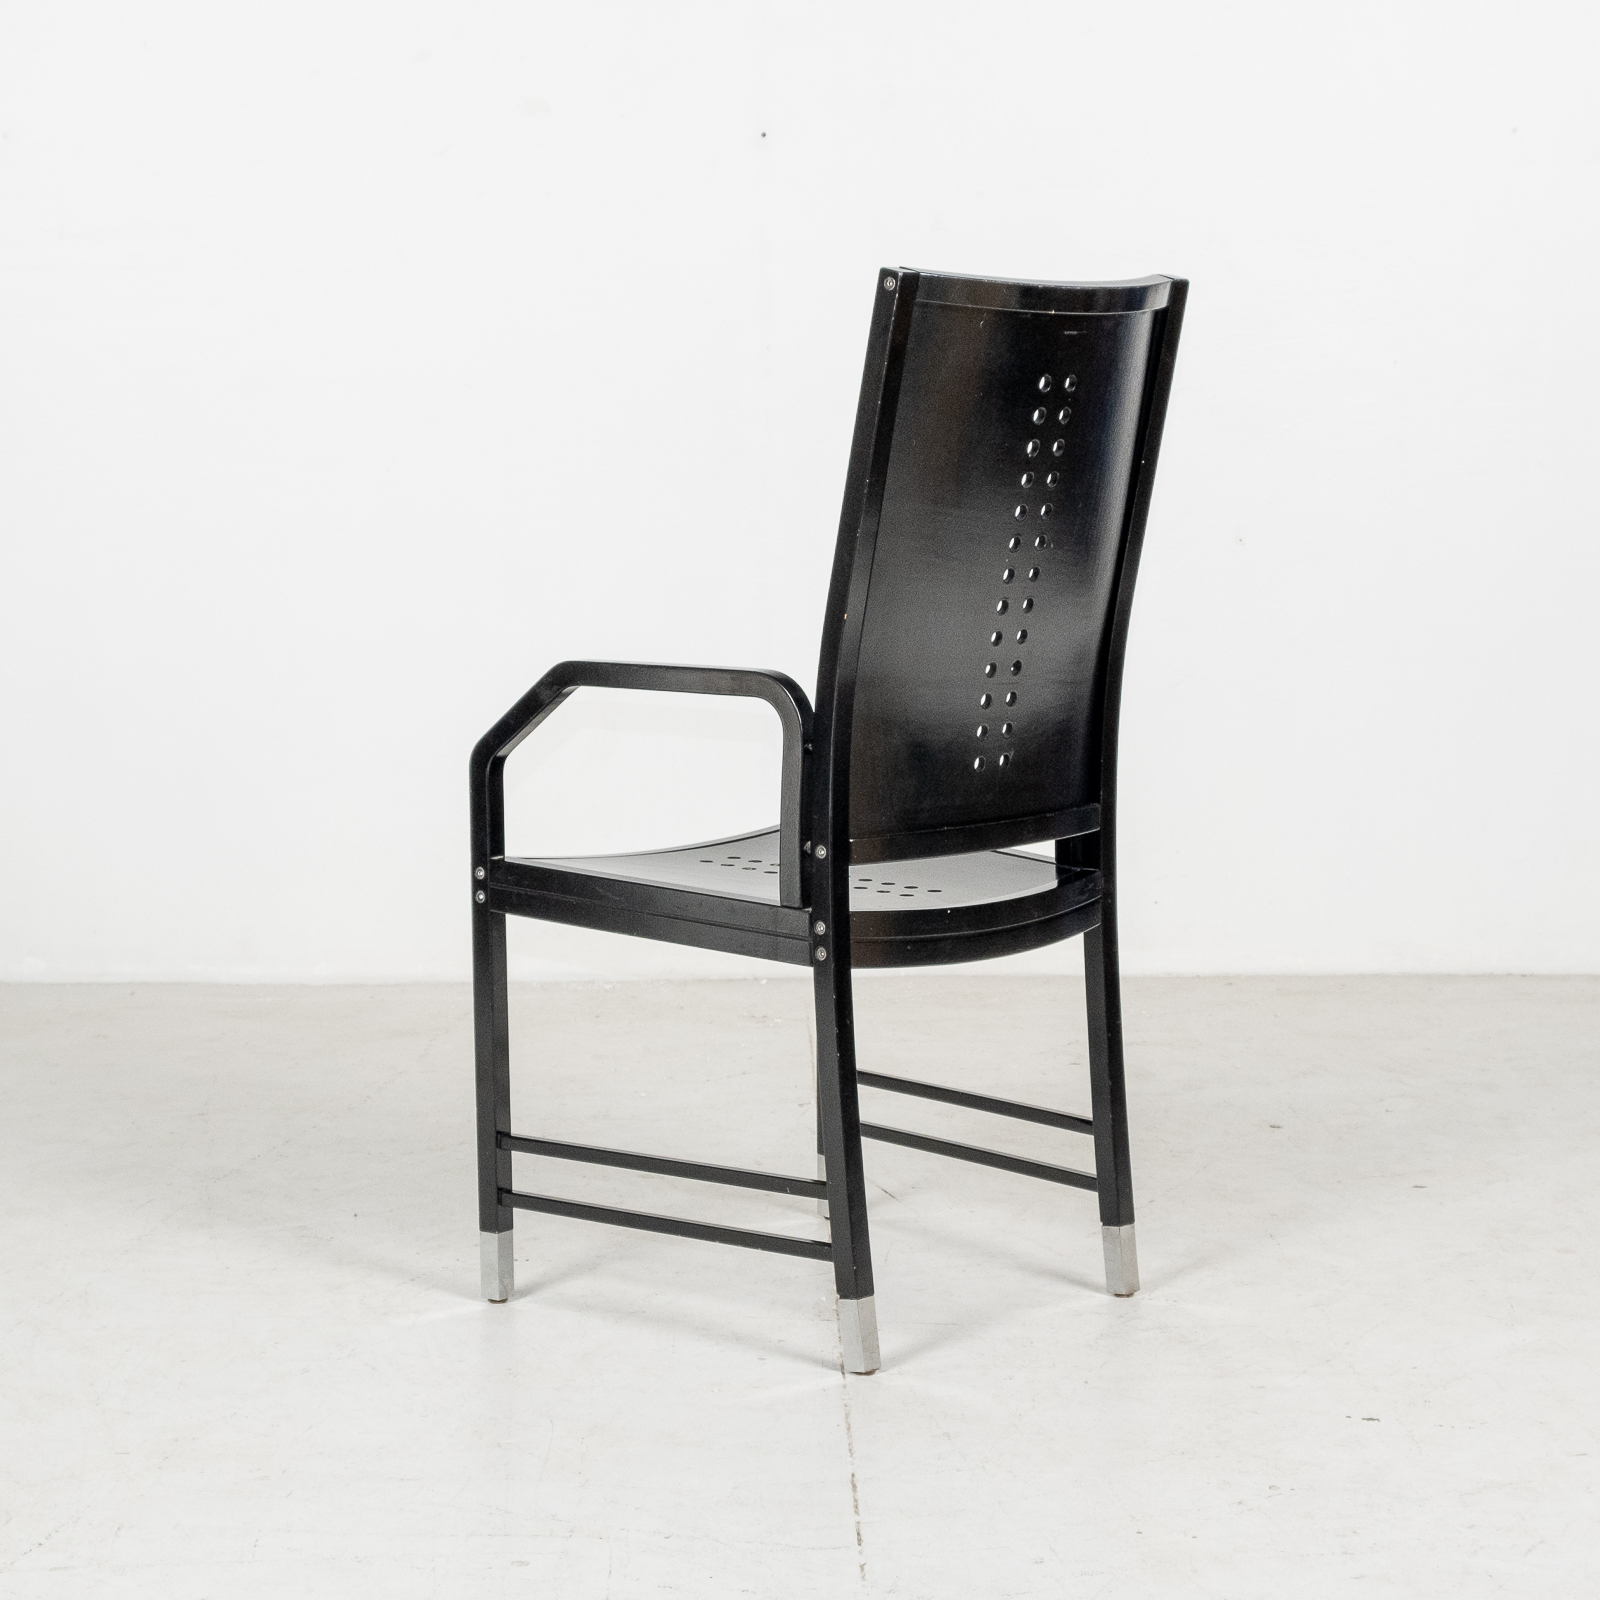 Thonet Chair In Black Hoffmann Style, 1980s, Germany02